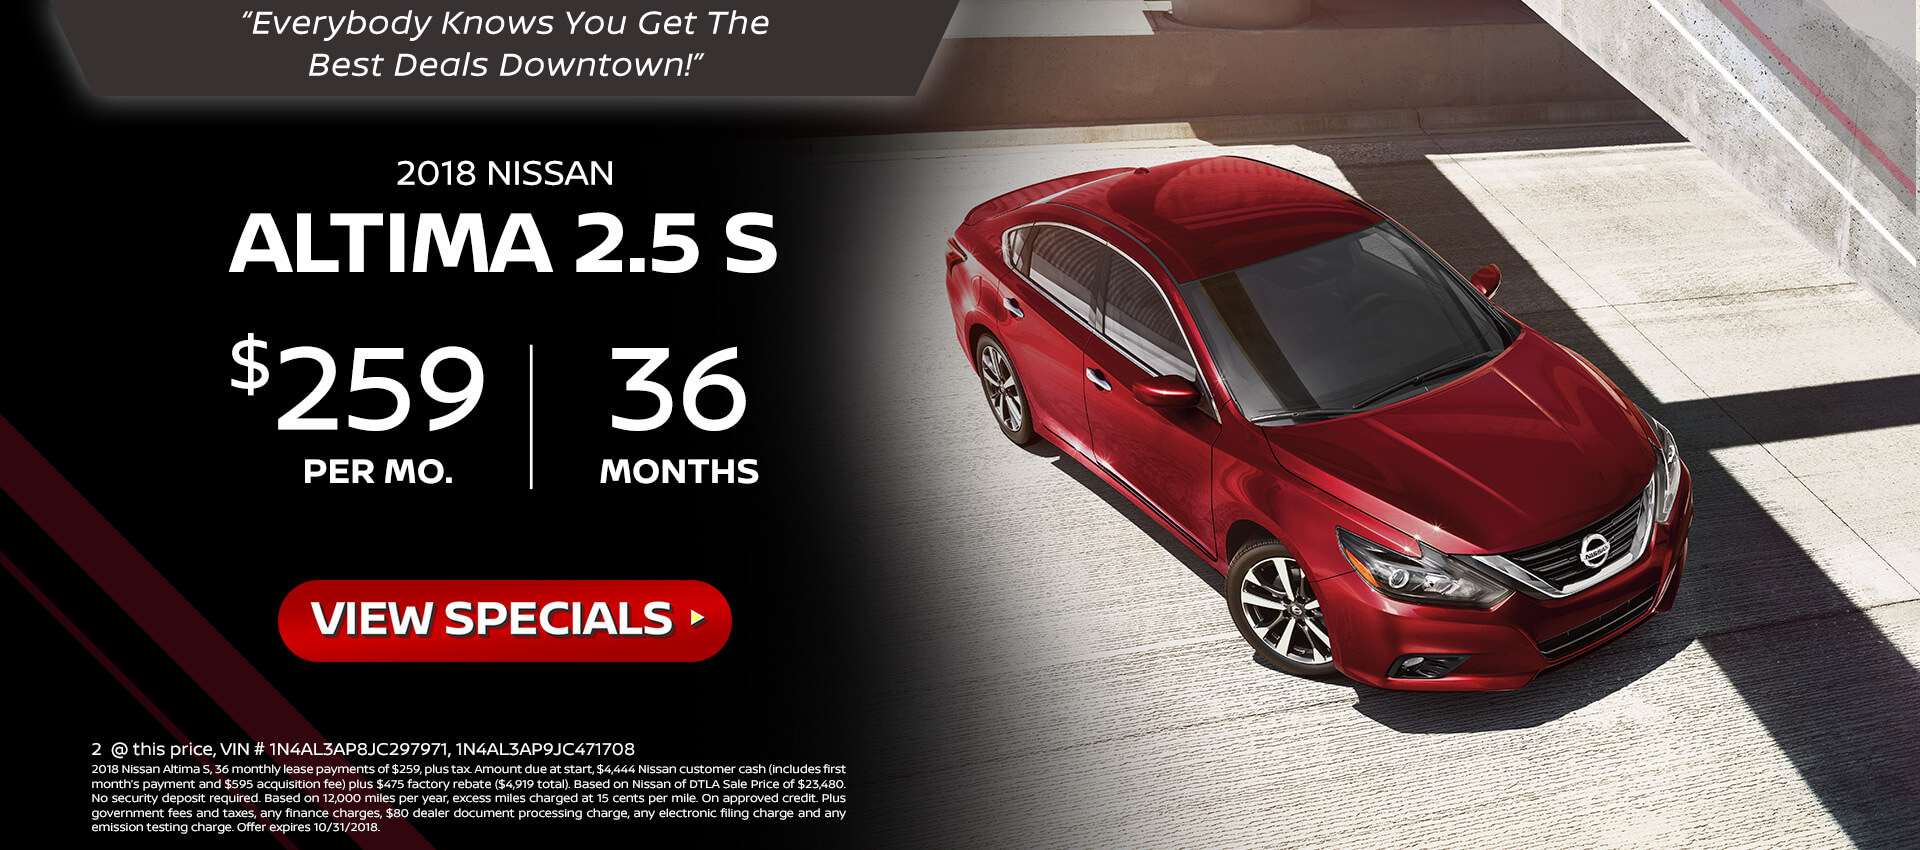 Nissan Dealer   Los Angeles, Hollywood, Pasadena, Glendale | Nissan ...